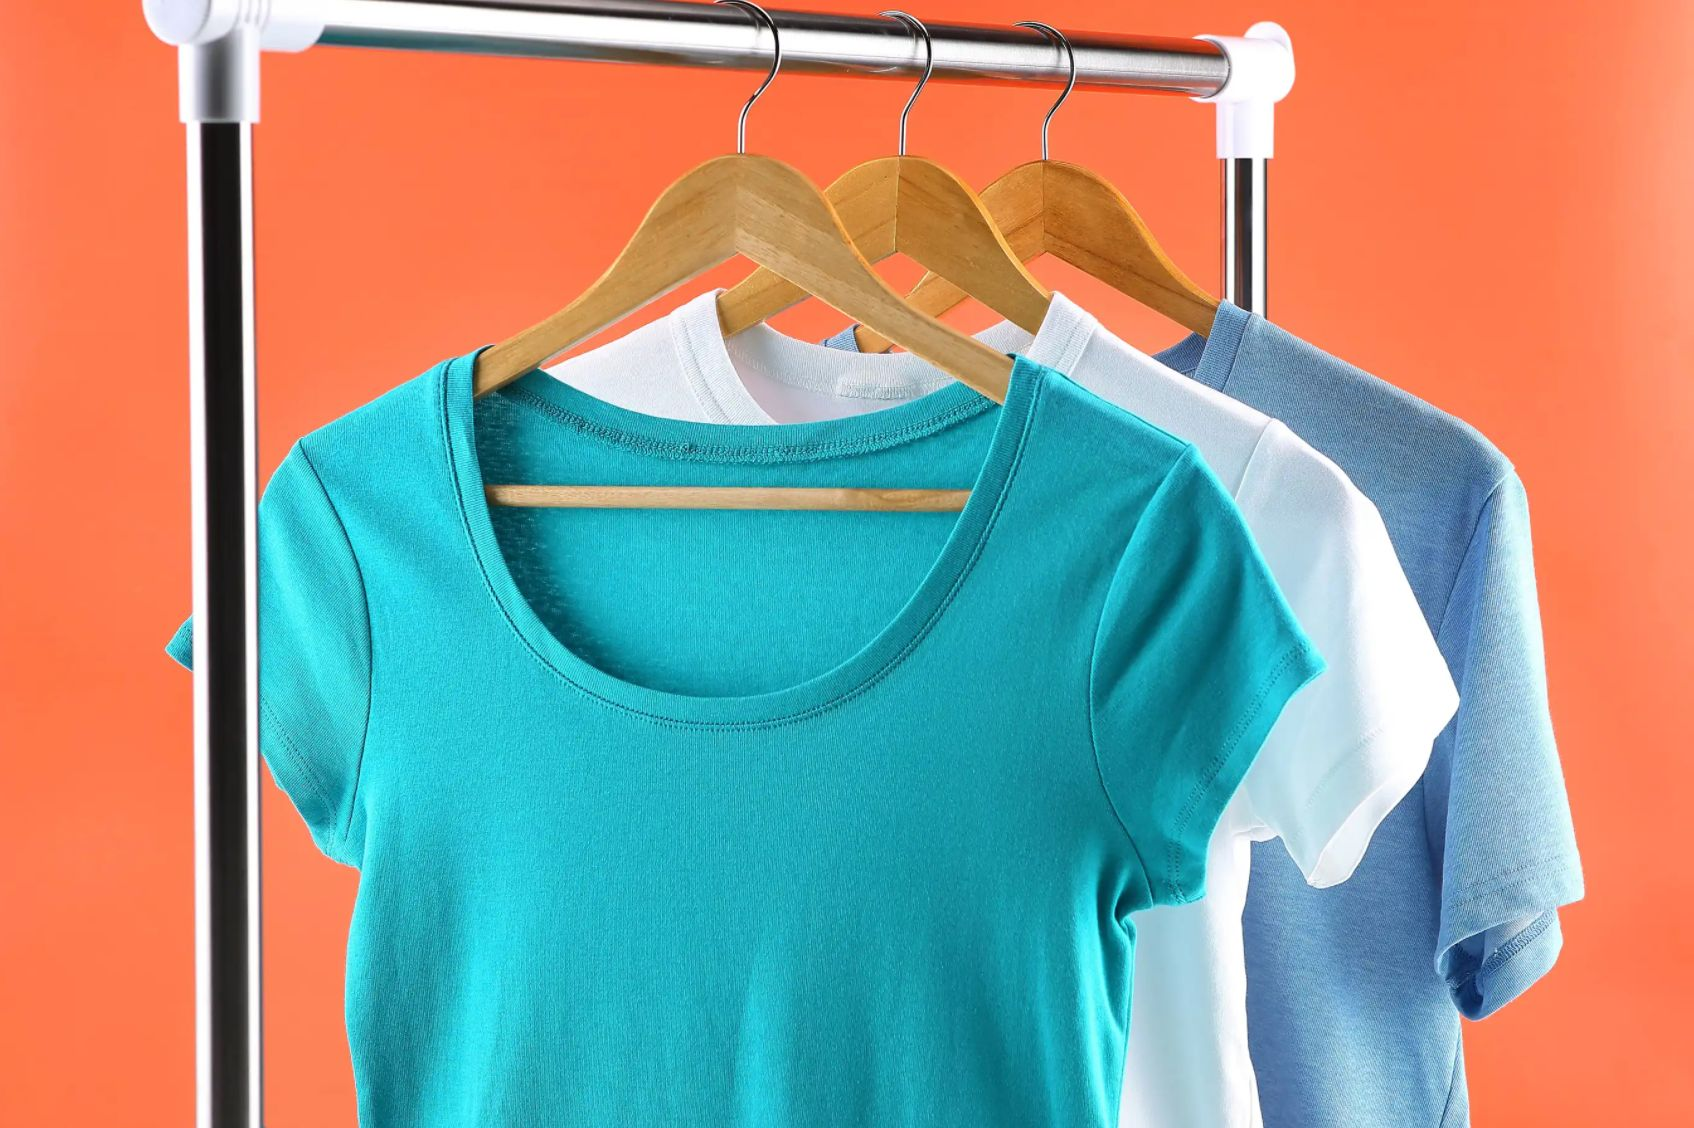 clothing rail with a selection of coloured shirts